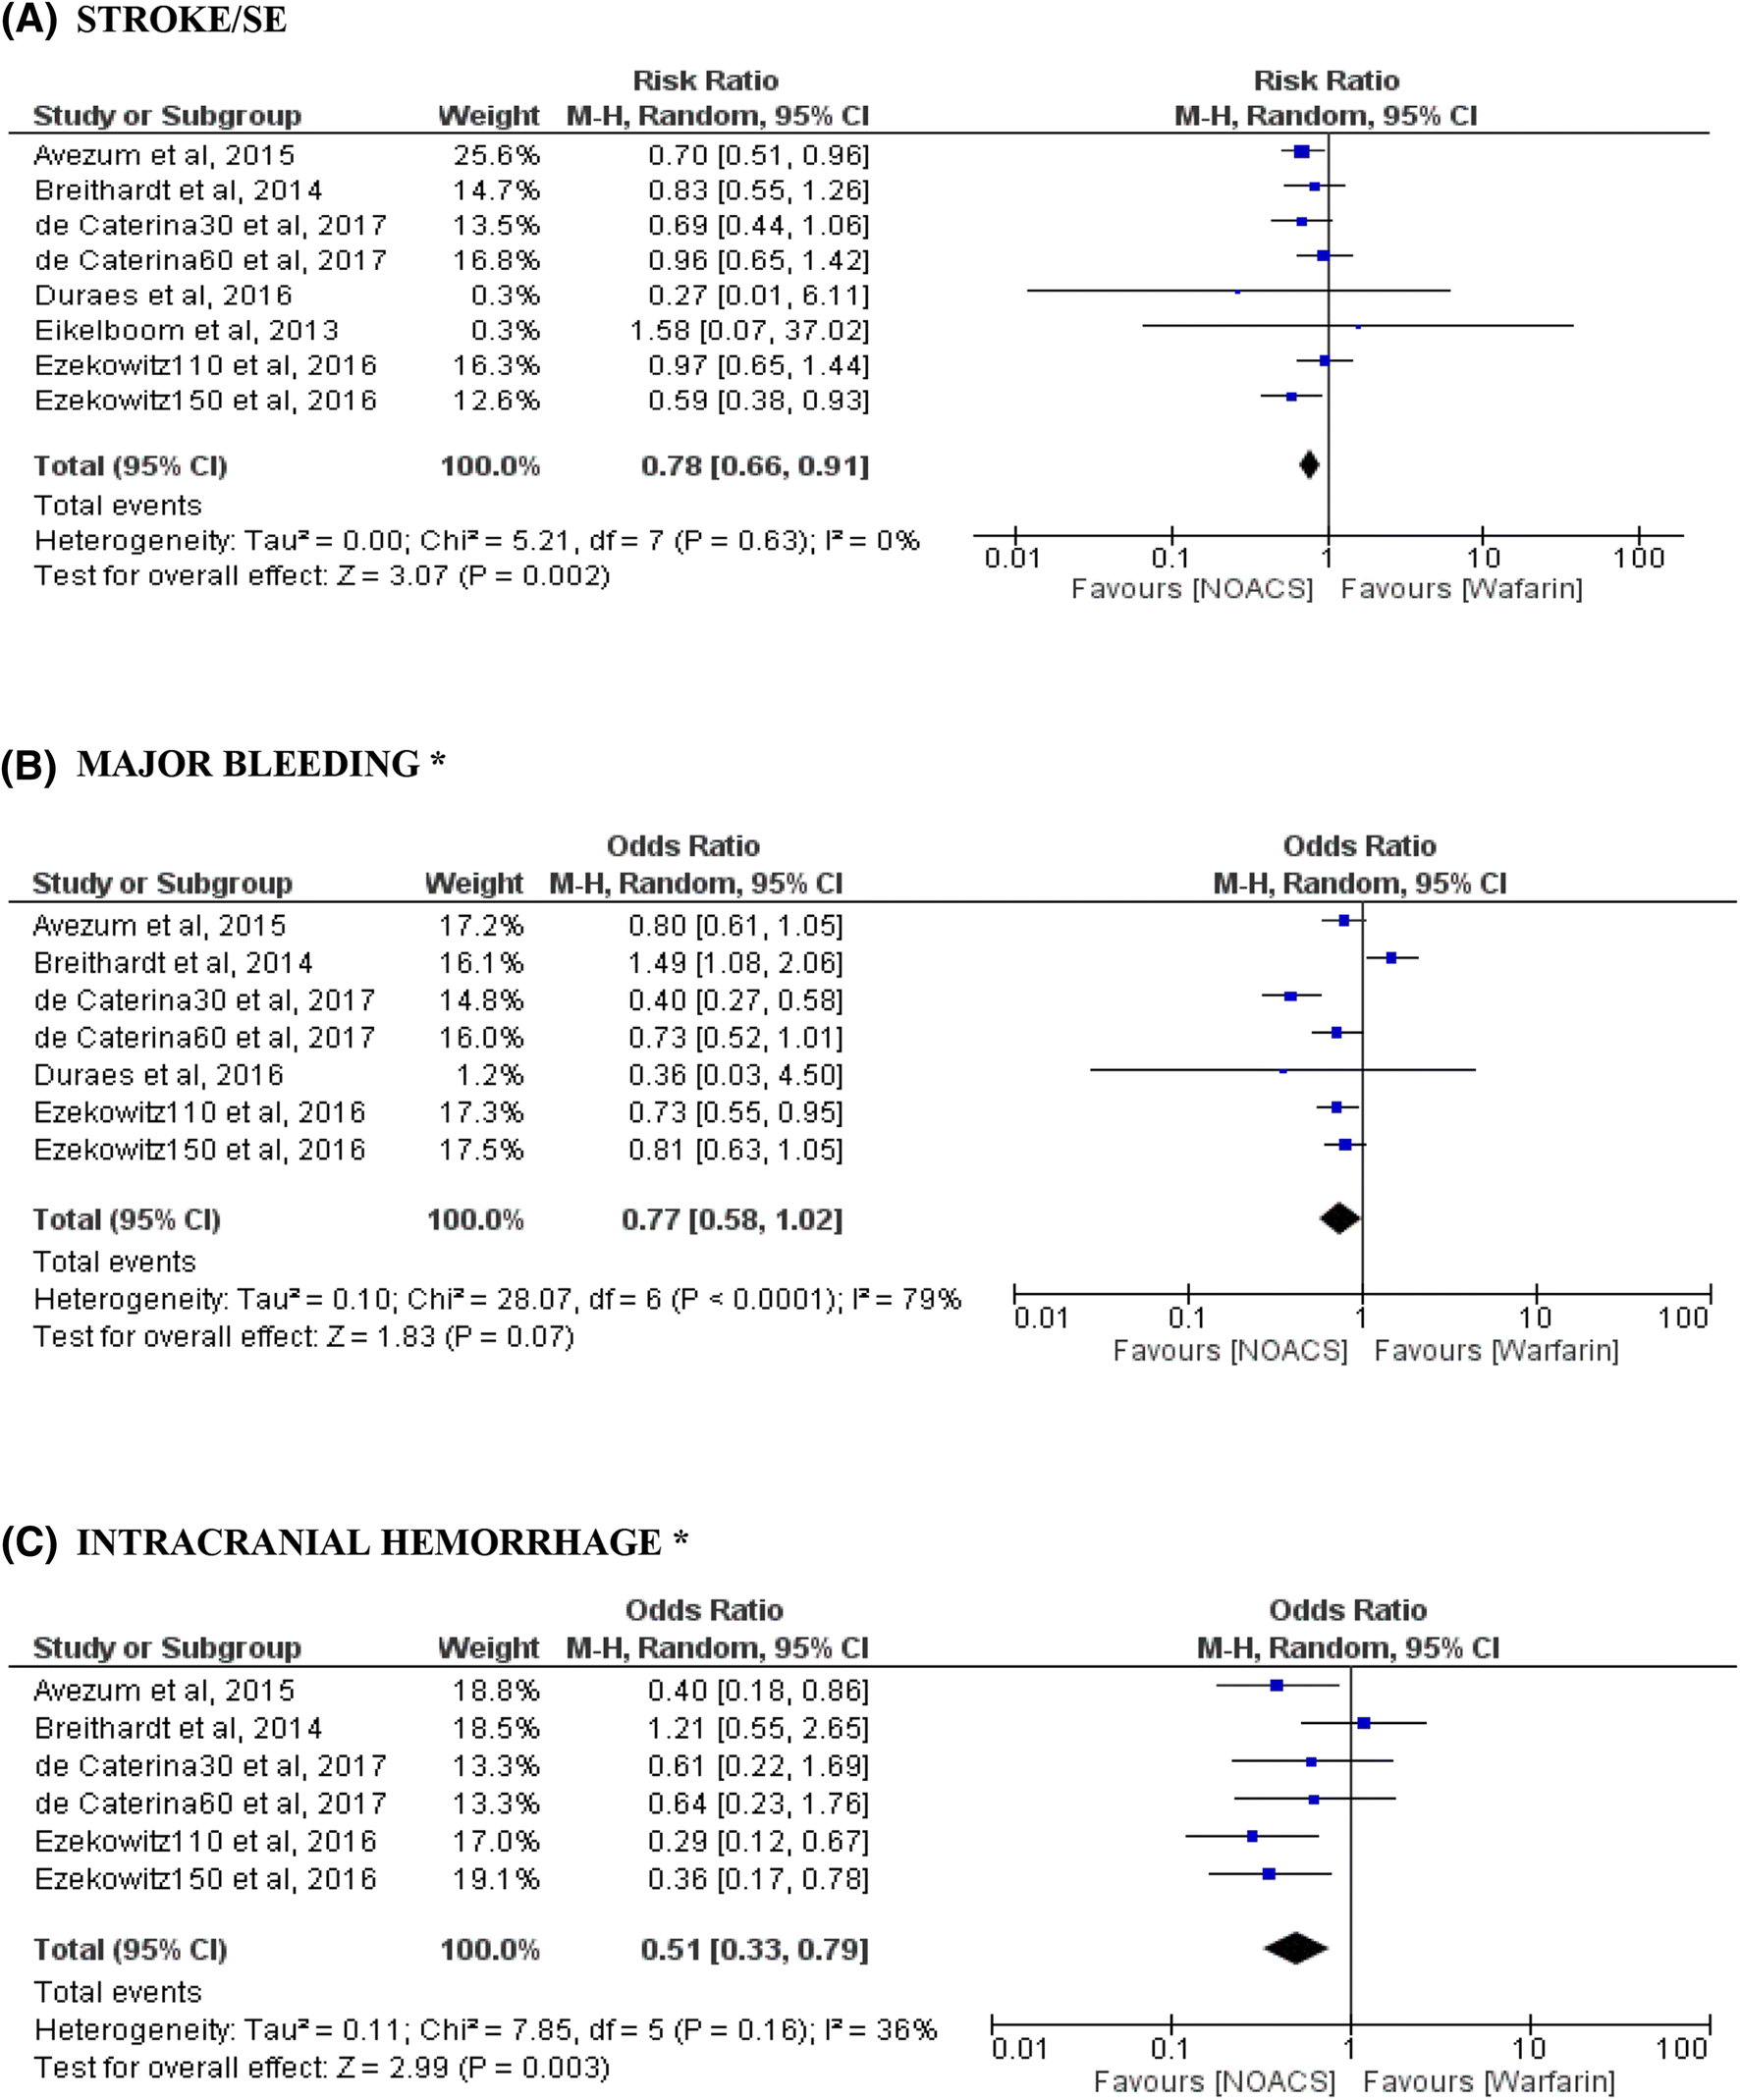 Comparison of the New Oral Anticoagulants and Warfarin in